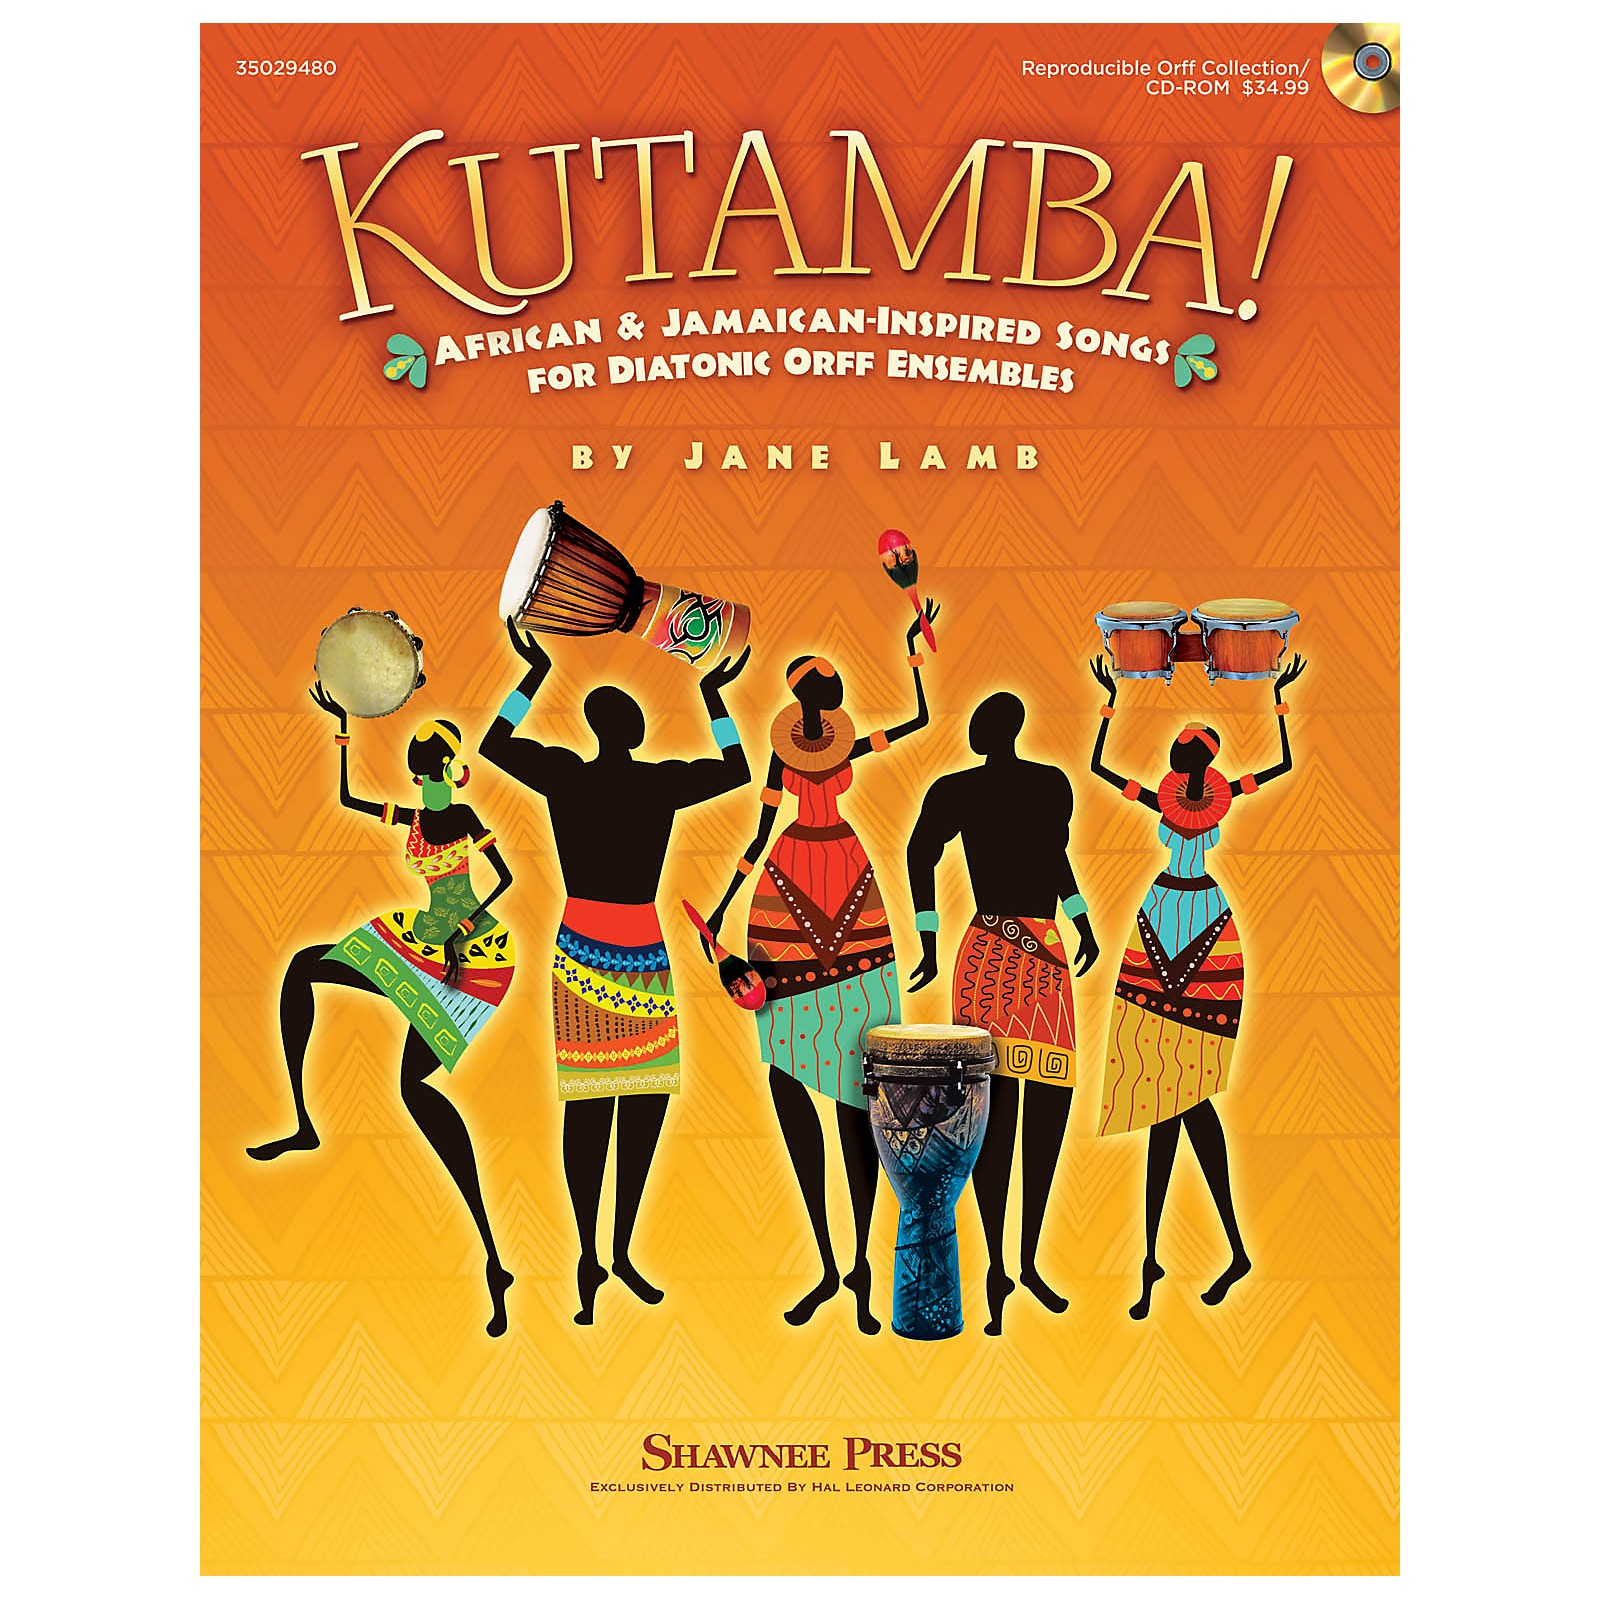 Shawnee Press Kutamba! (African and Jamaican Inspired Songs for the Diatonic Orff Ensembles) TEACHER/SINGER CD-ROM